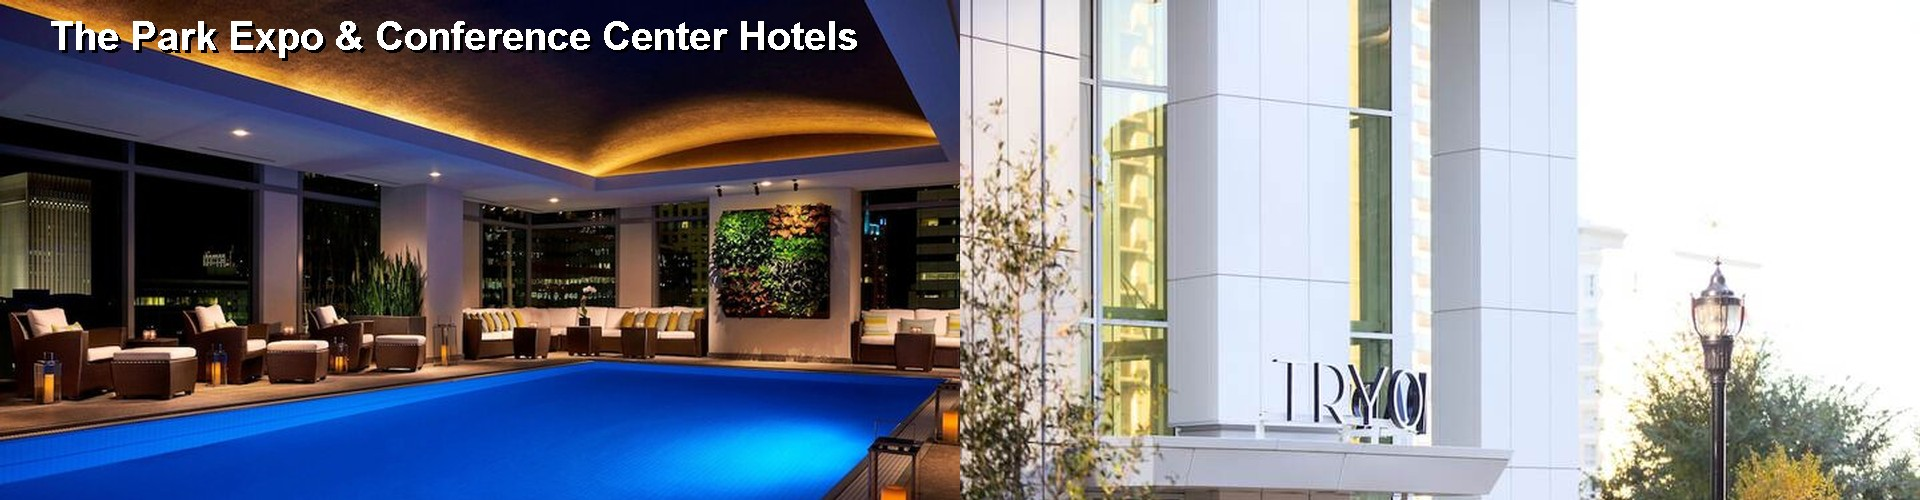 5 Best Hotels near The Park Expo & Conference Center